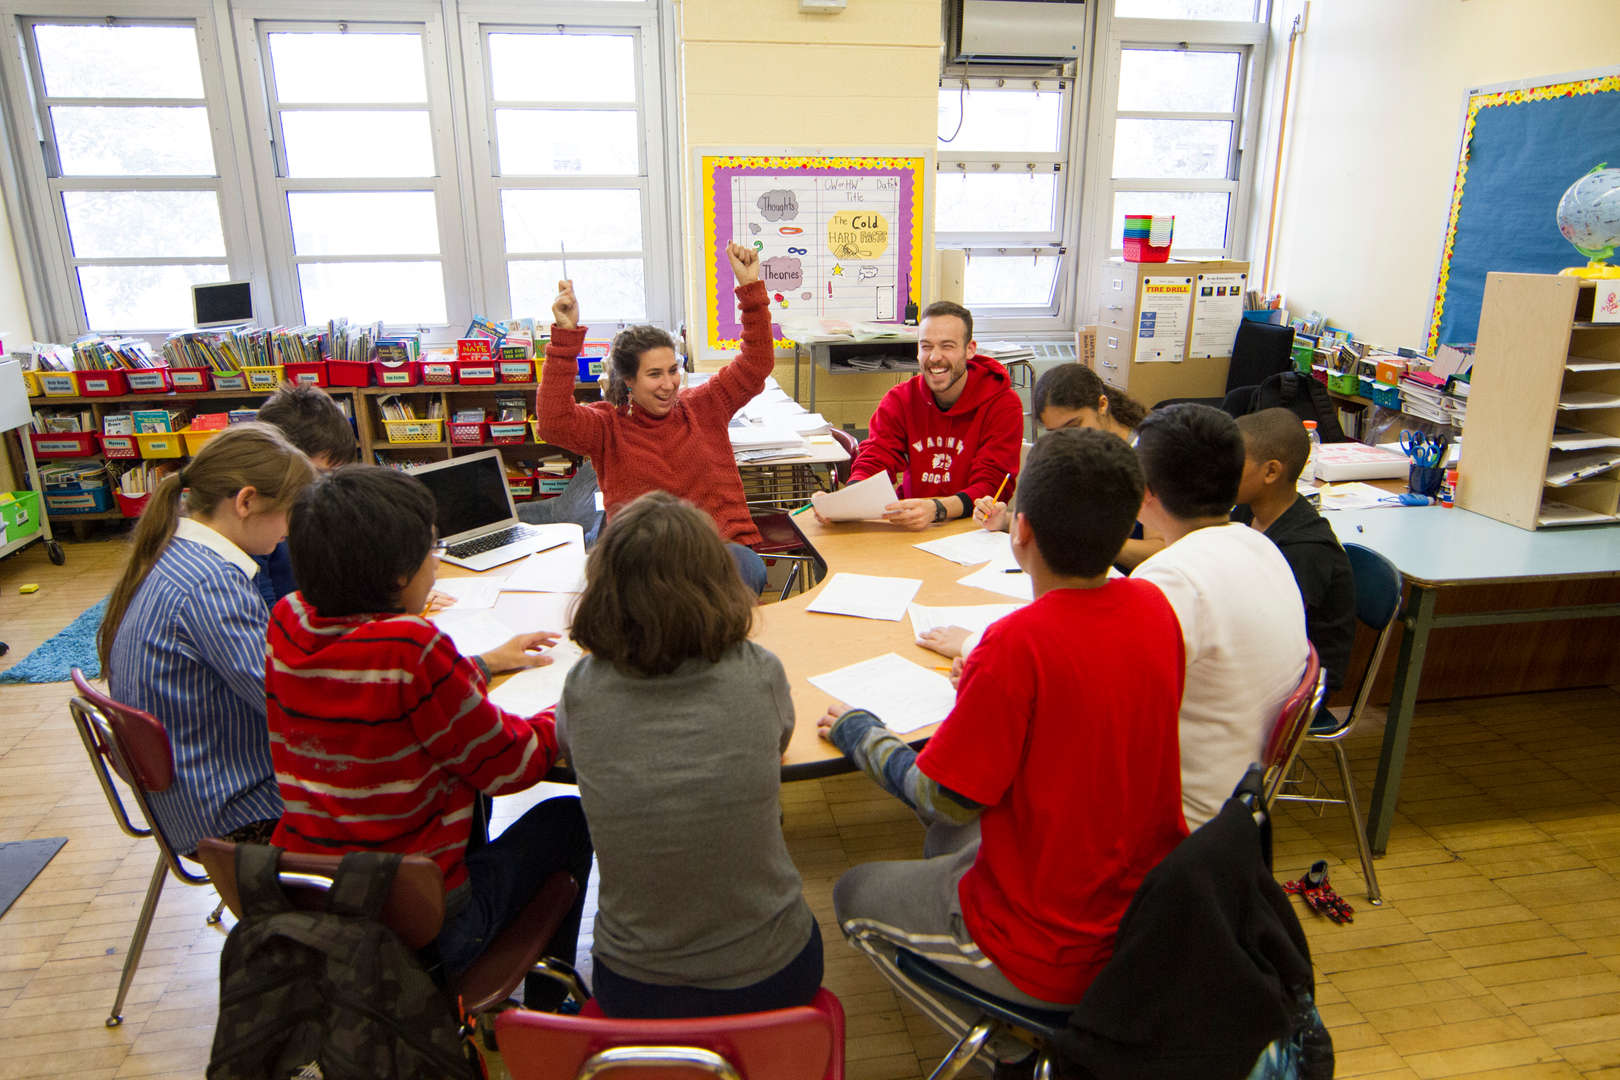 Students sit in circle with teachers for collaborative learning